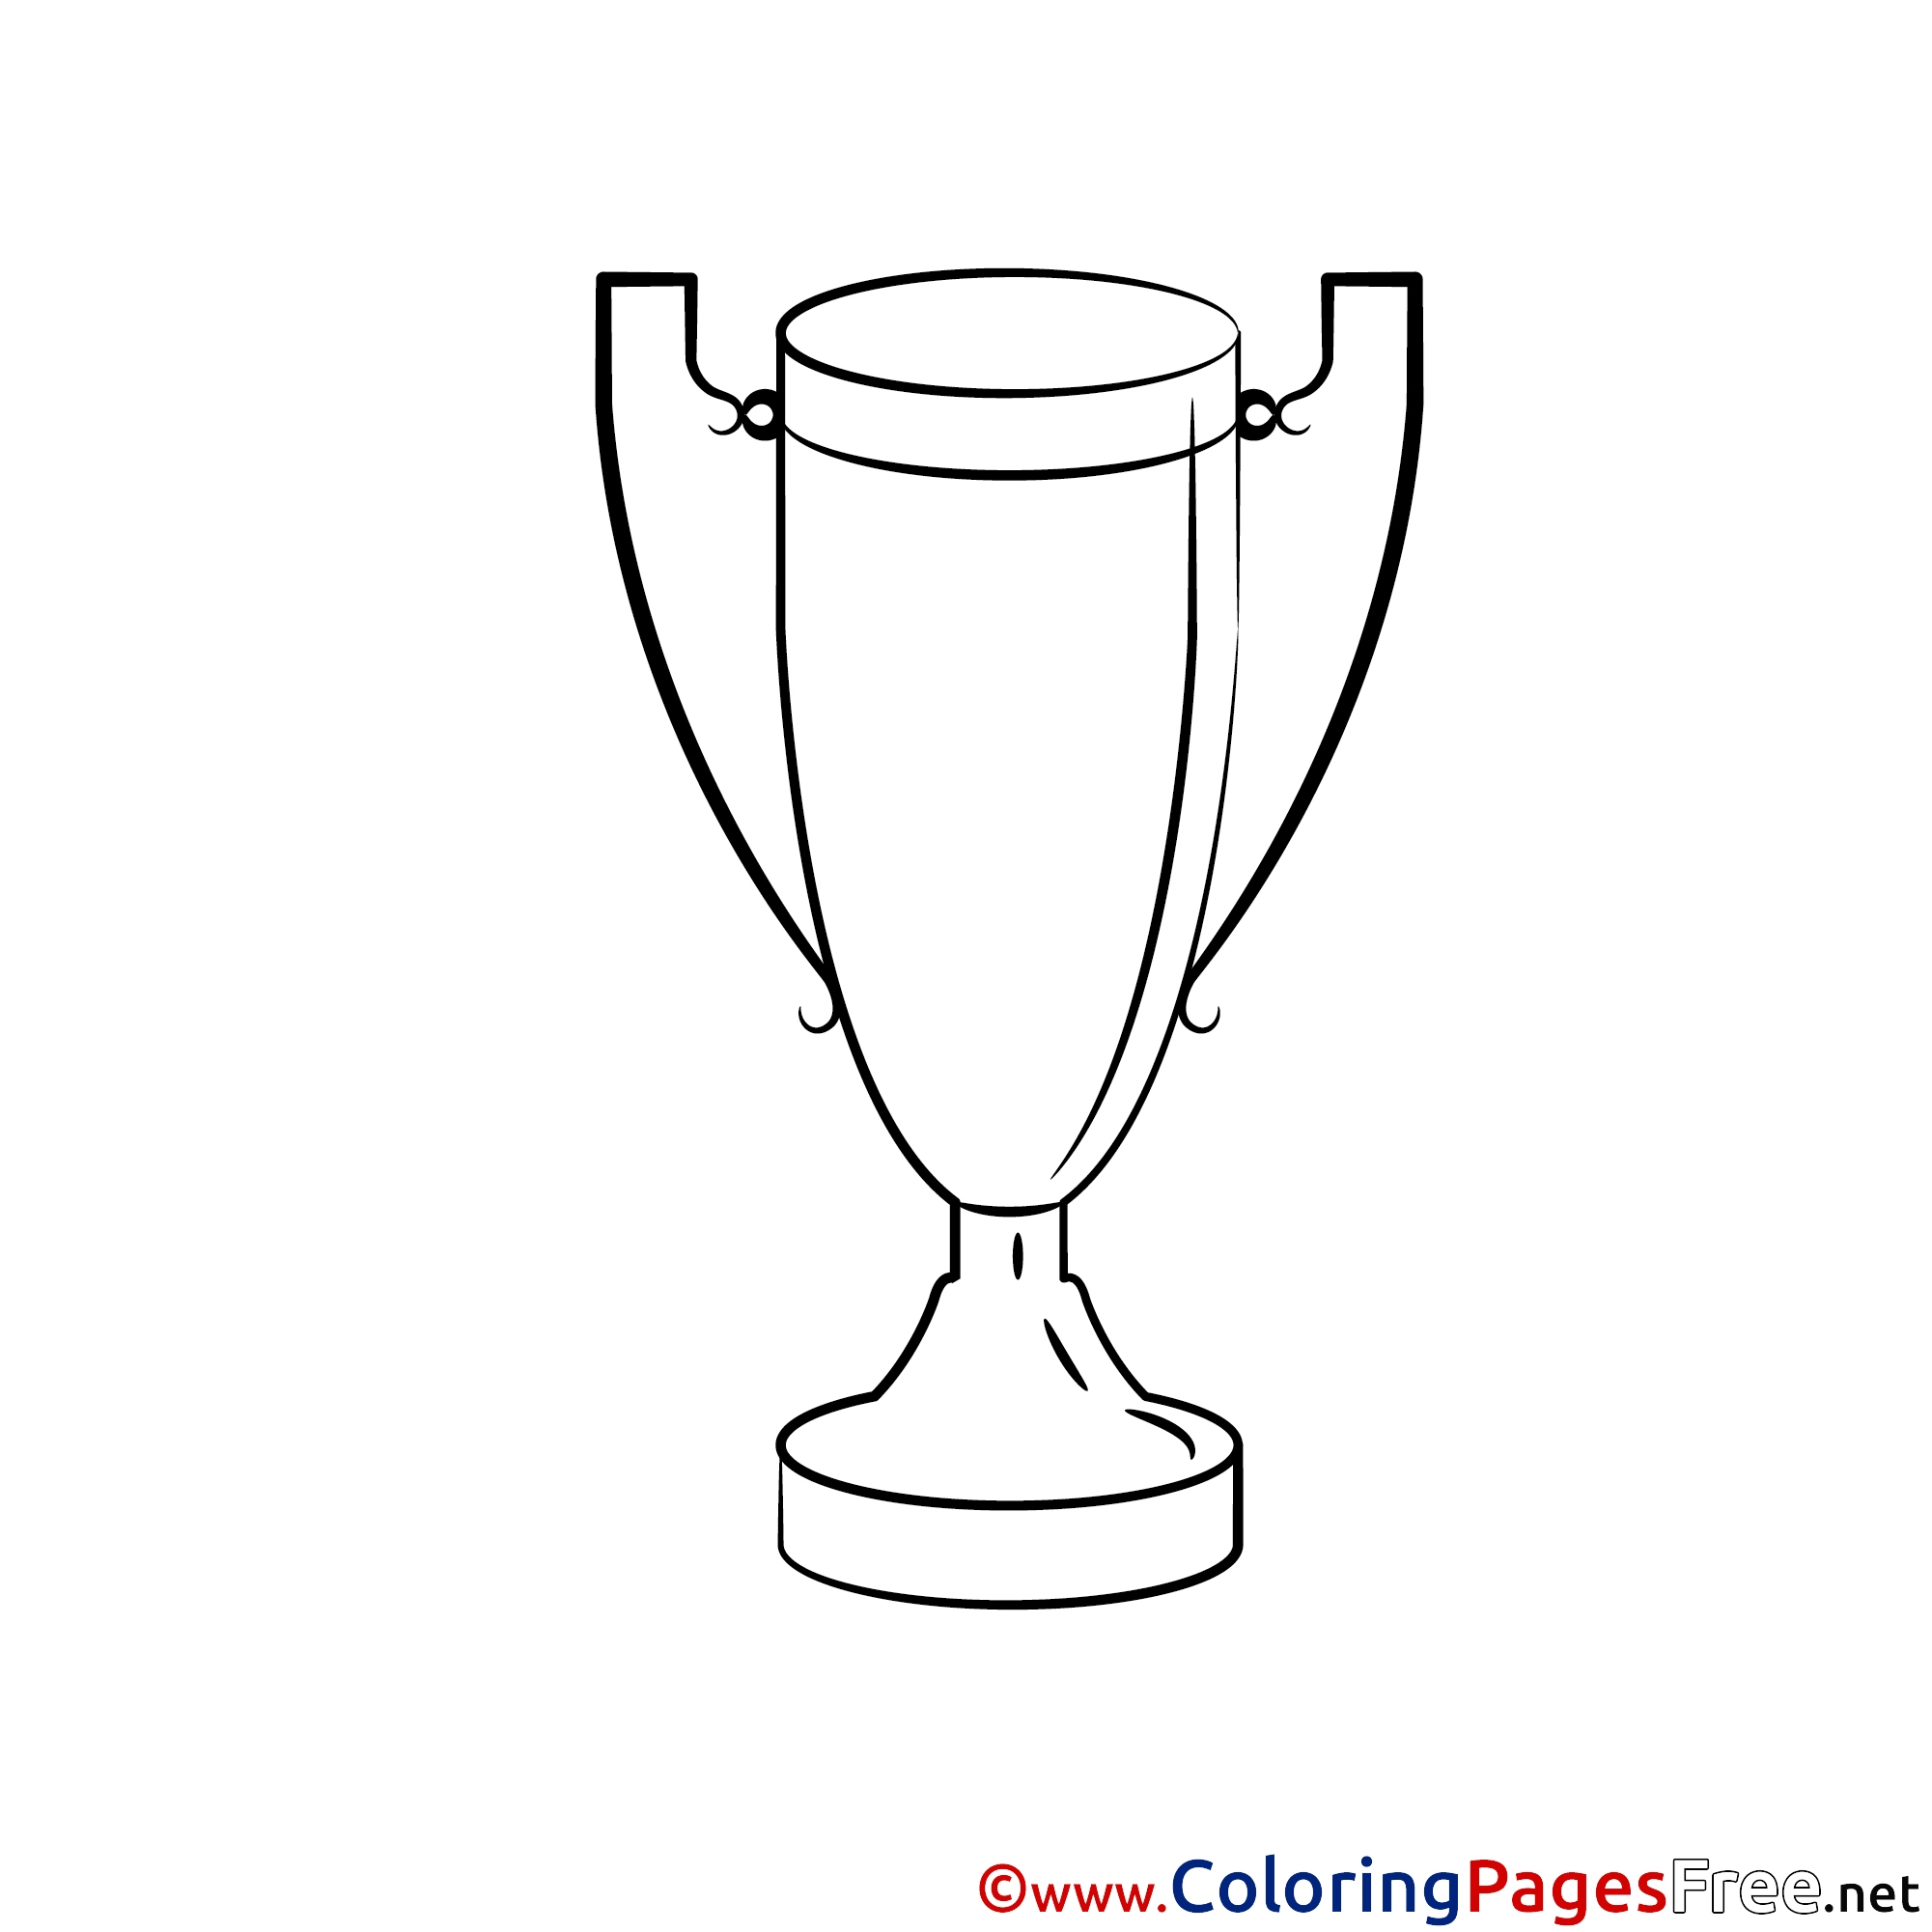 free printable valentine coloring pages - cup for kids printable colouring page 4288